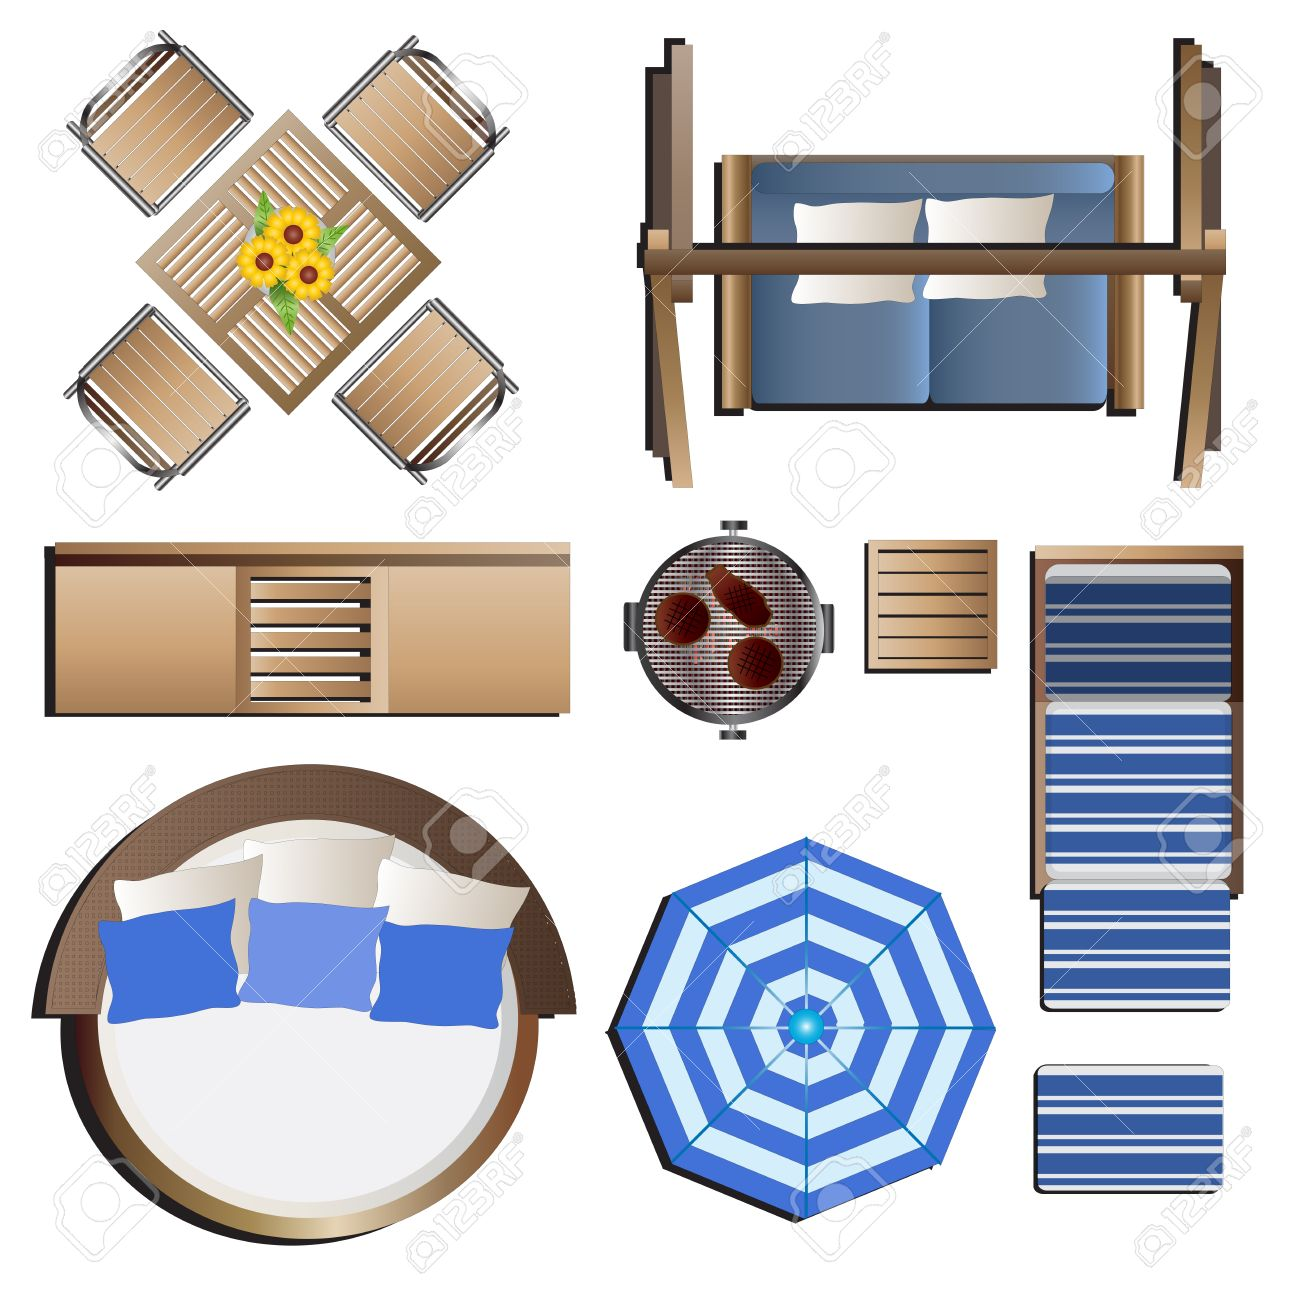 outdoor furniture top view set 19 for landscape design vector illustration stock vector 48756158